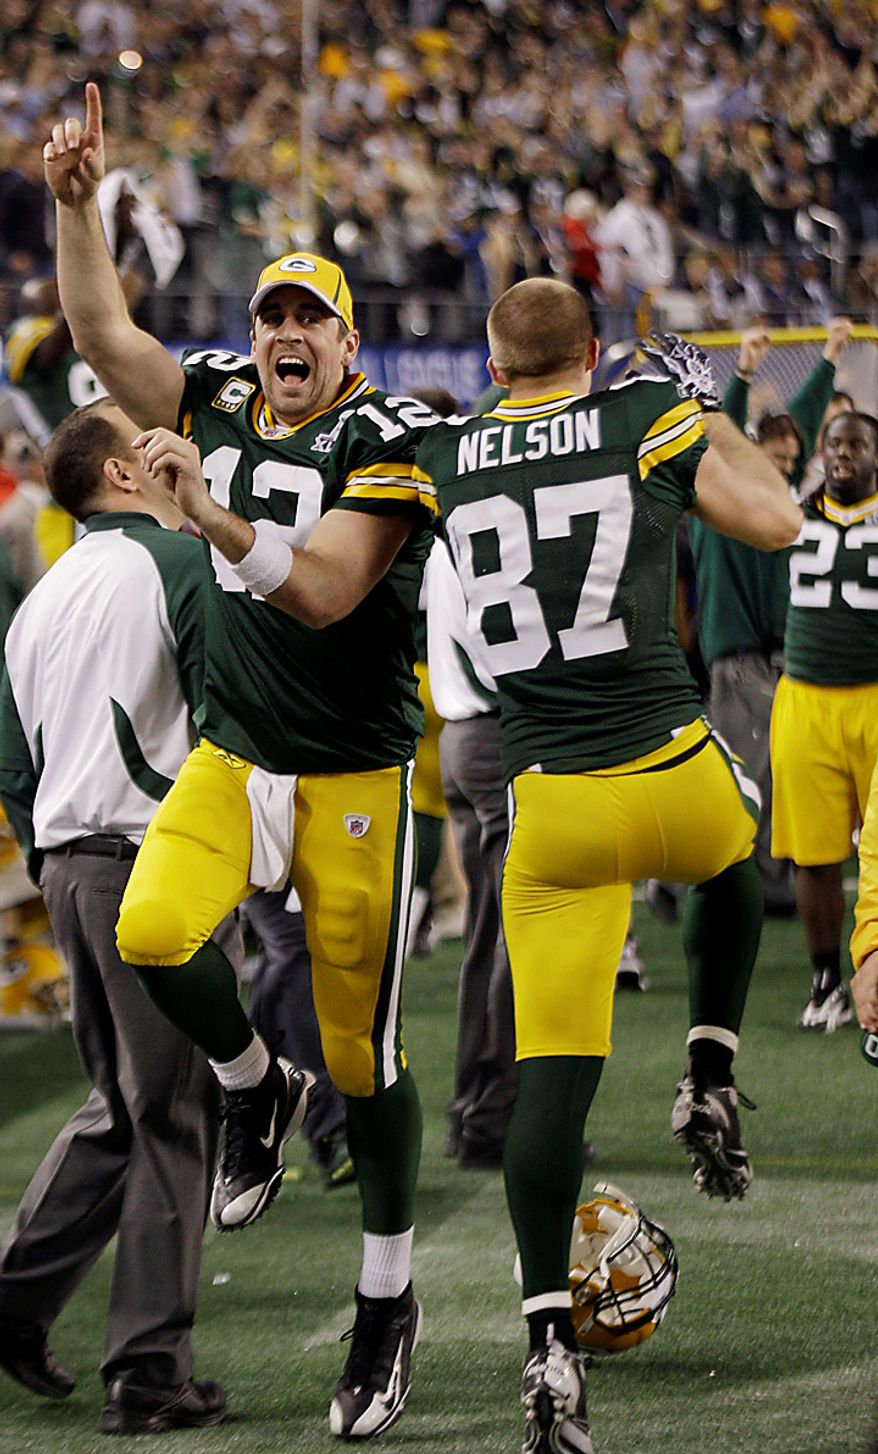 The Green Bay Packers' Aaron Rodgers, left, and teammate Jordy Nelson (87) celebrate after the Packers beat the Pittsburgh Steelers in the NFL football Super Bowl XLV game on Sunday, Feb. 6, 2011, in Arlington, Texas. The Packers won 31-25. (AP Photo/David J. Phillip)